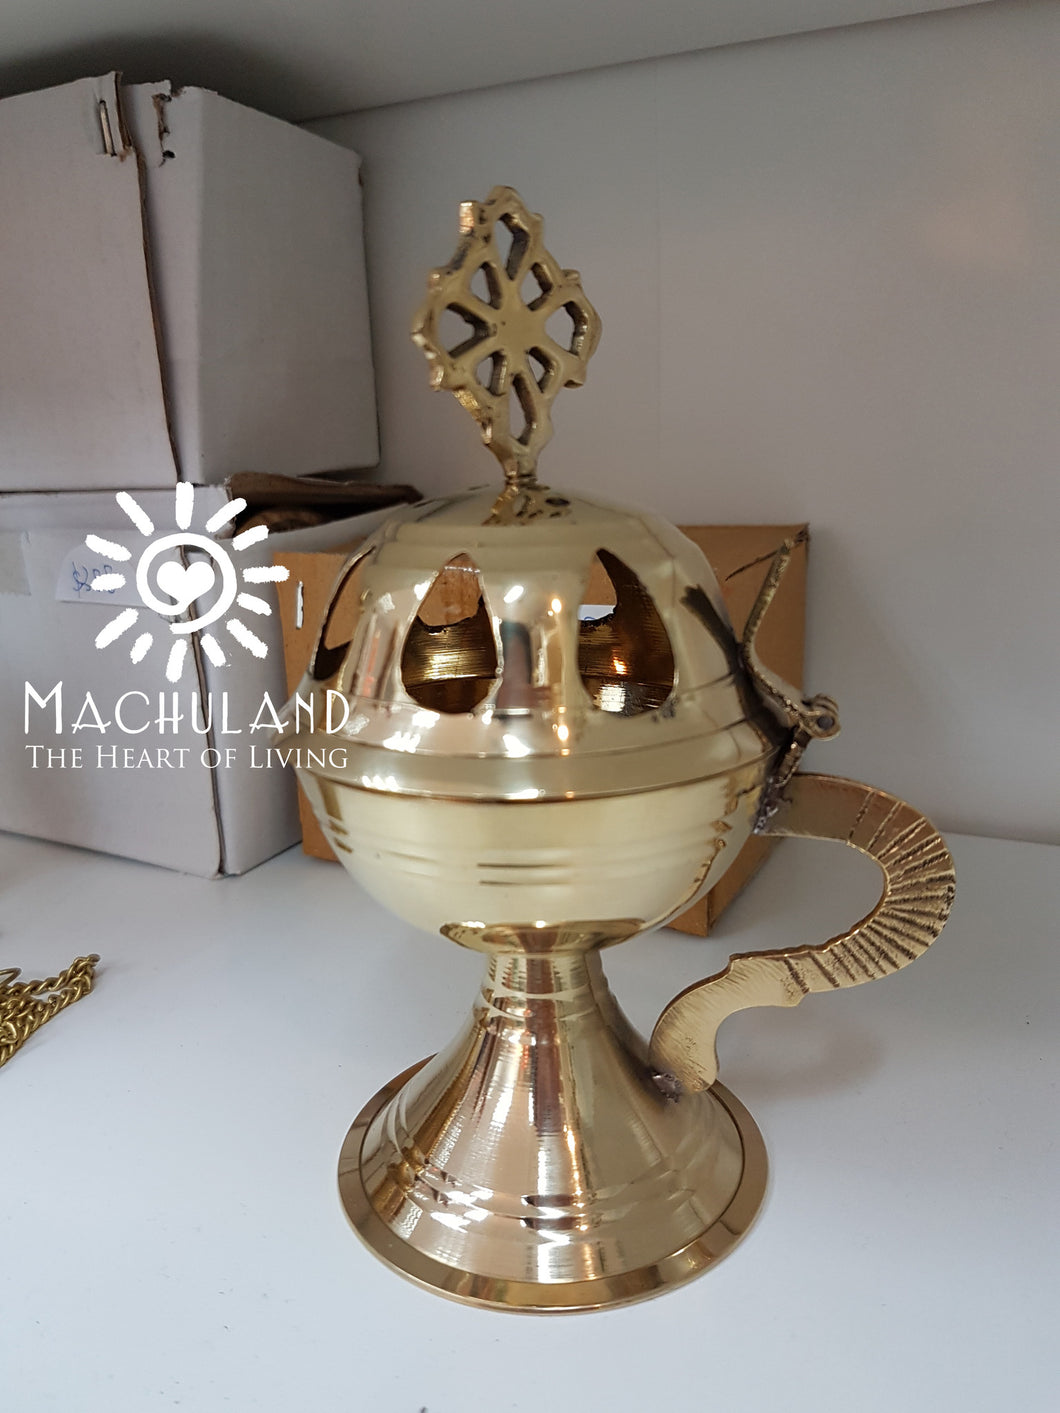 黃銅爐 Brass Incense Burner - Machuland hk